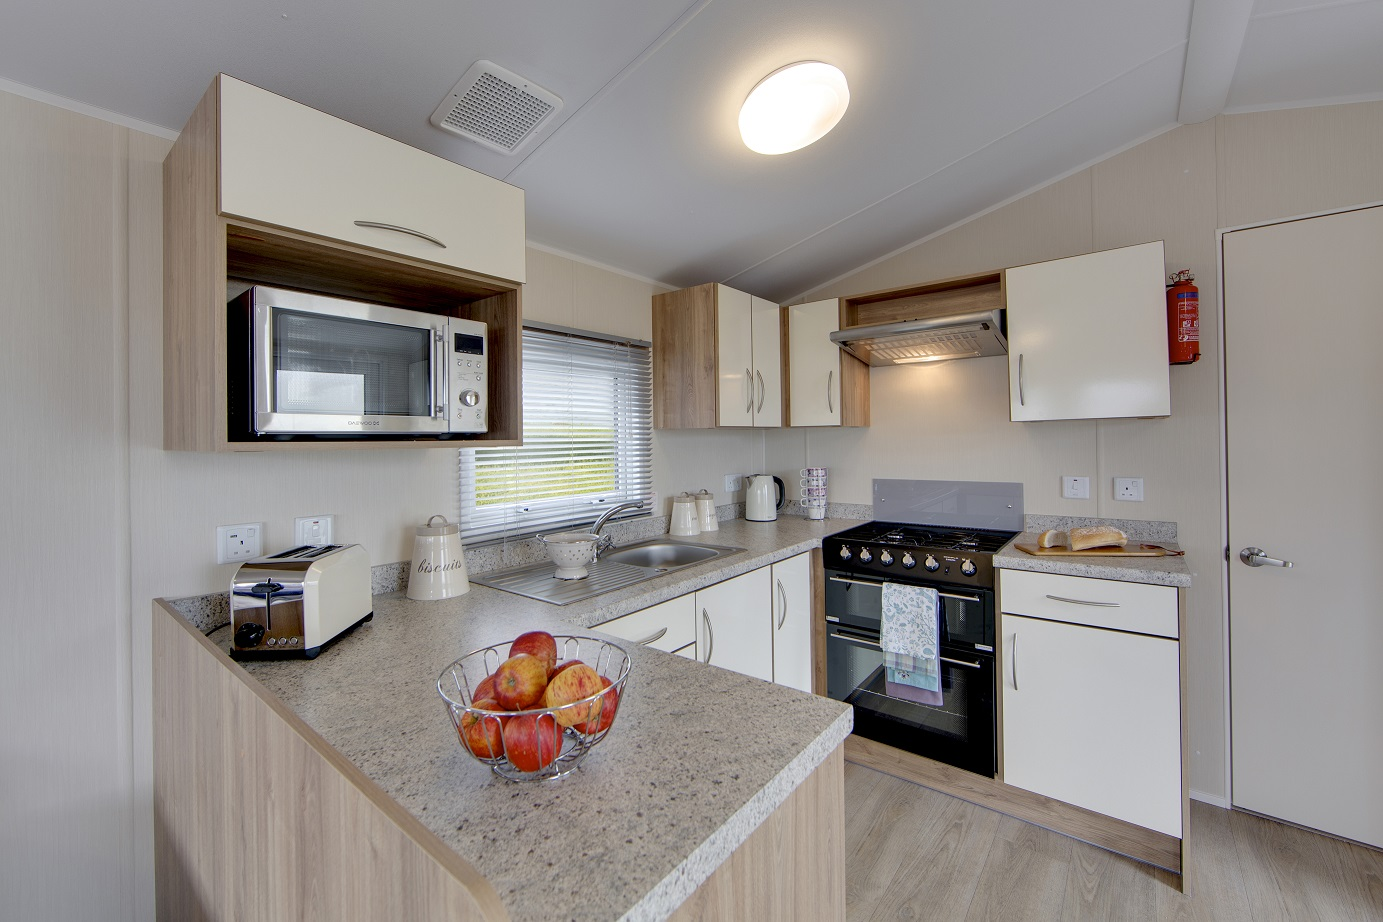 Willerby Rio Gold: New Static Caravans and Holiday Homes for Sale, Langley Moor, Durham Large Image 3